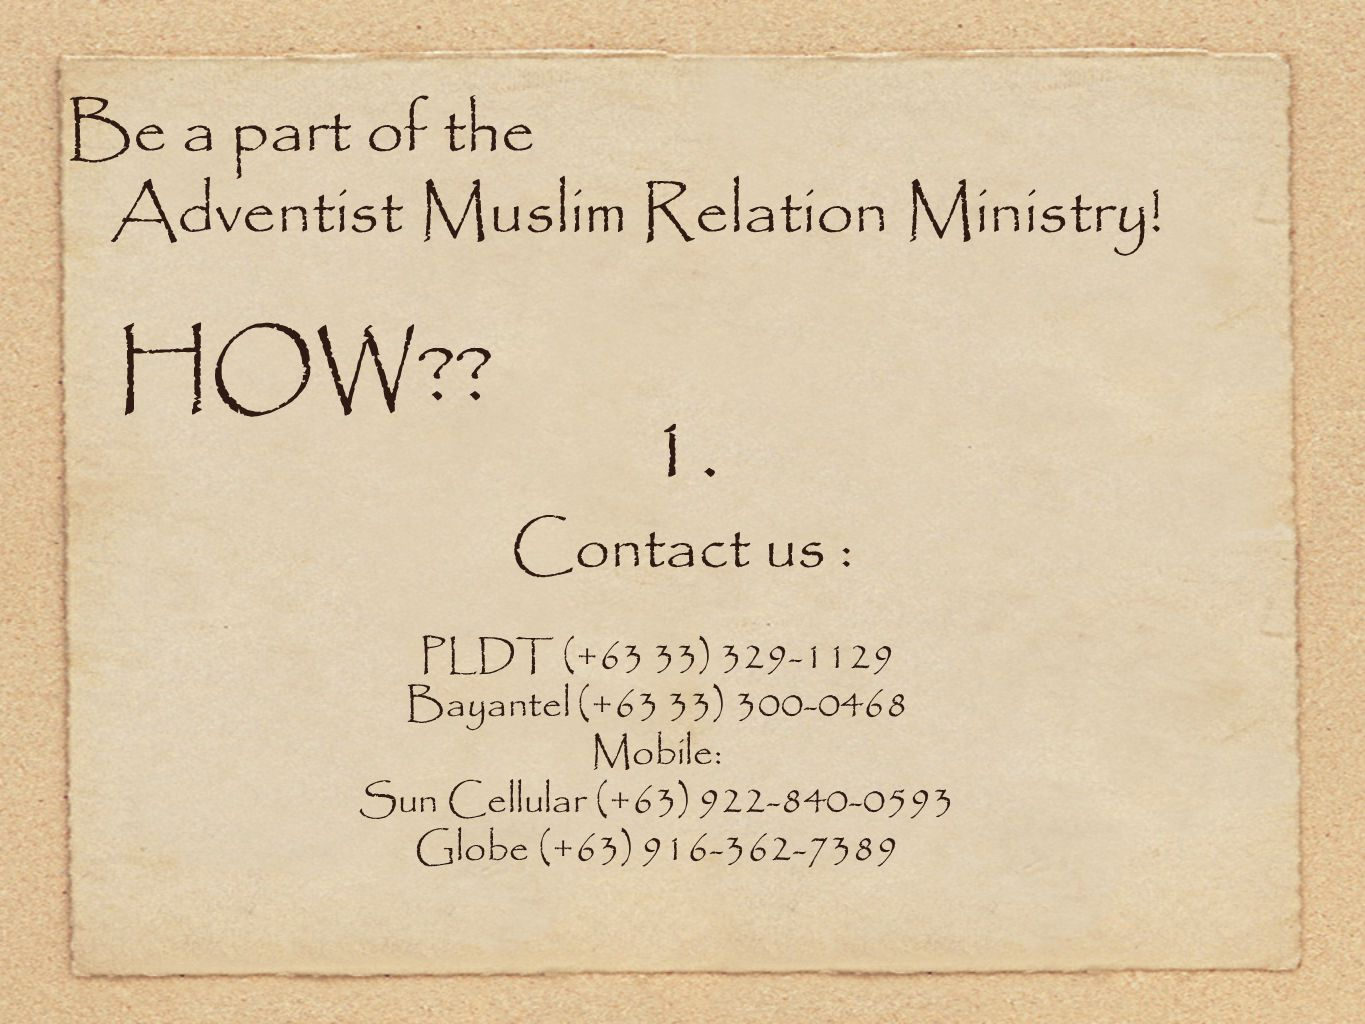 Be a part of the Adventist Muslim Relation Ministry.